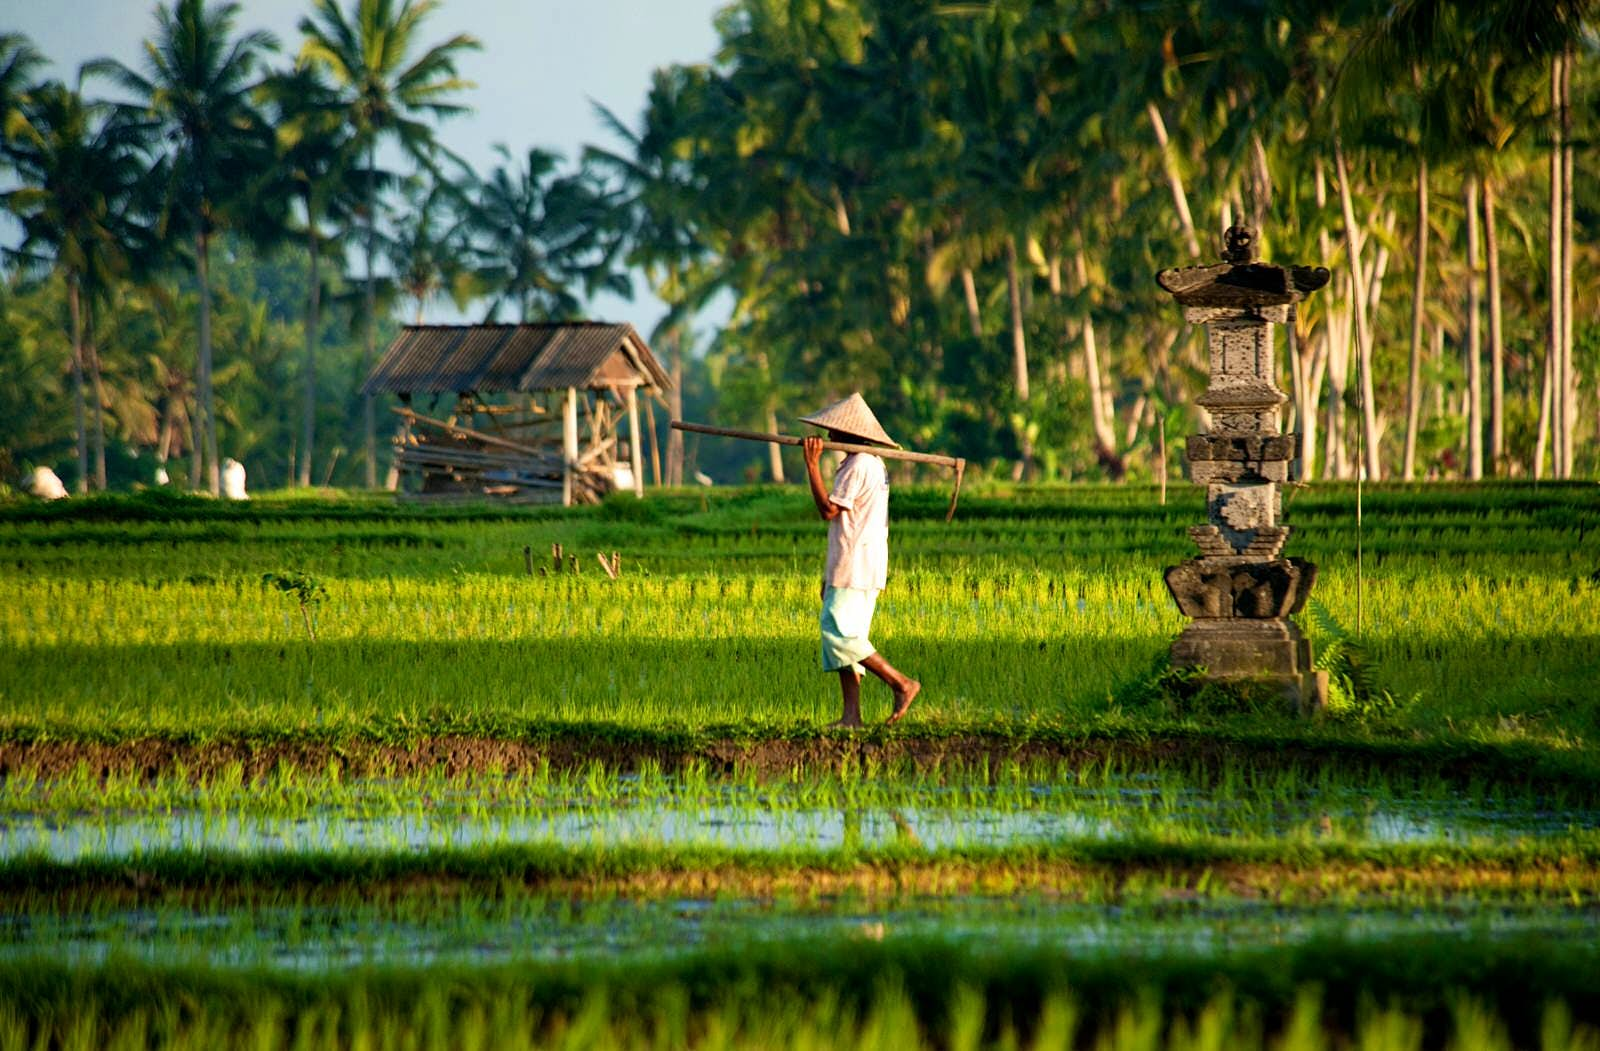 Man working in flooded green rice field. He is wearing a traditional hat and carrying a scythe,